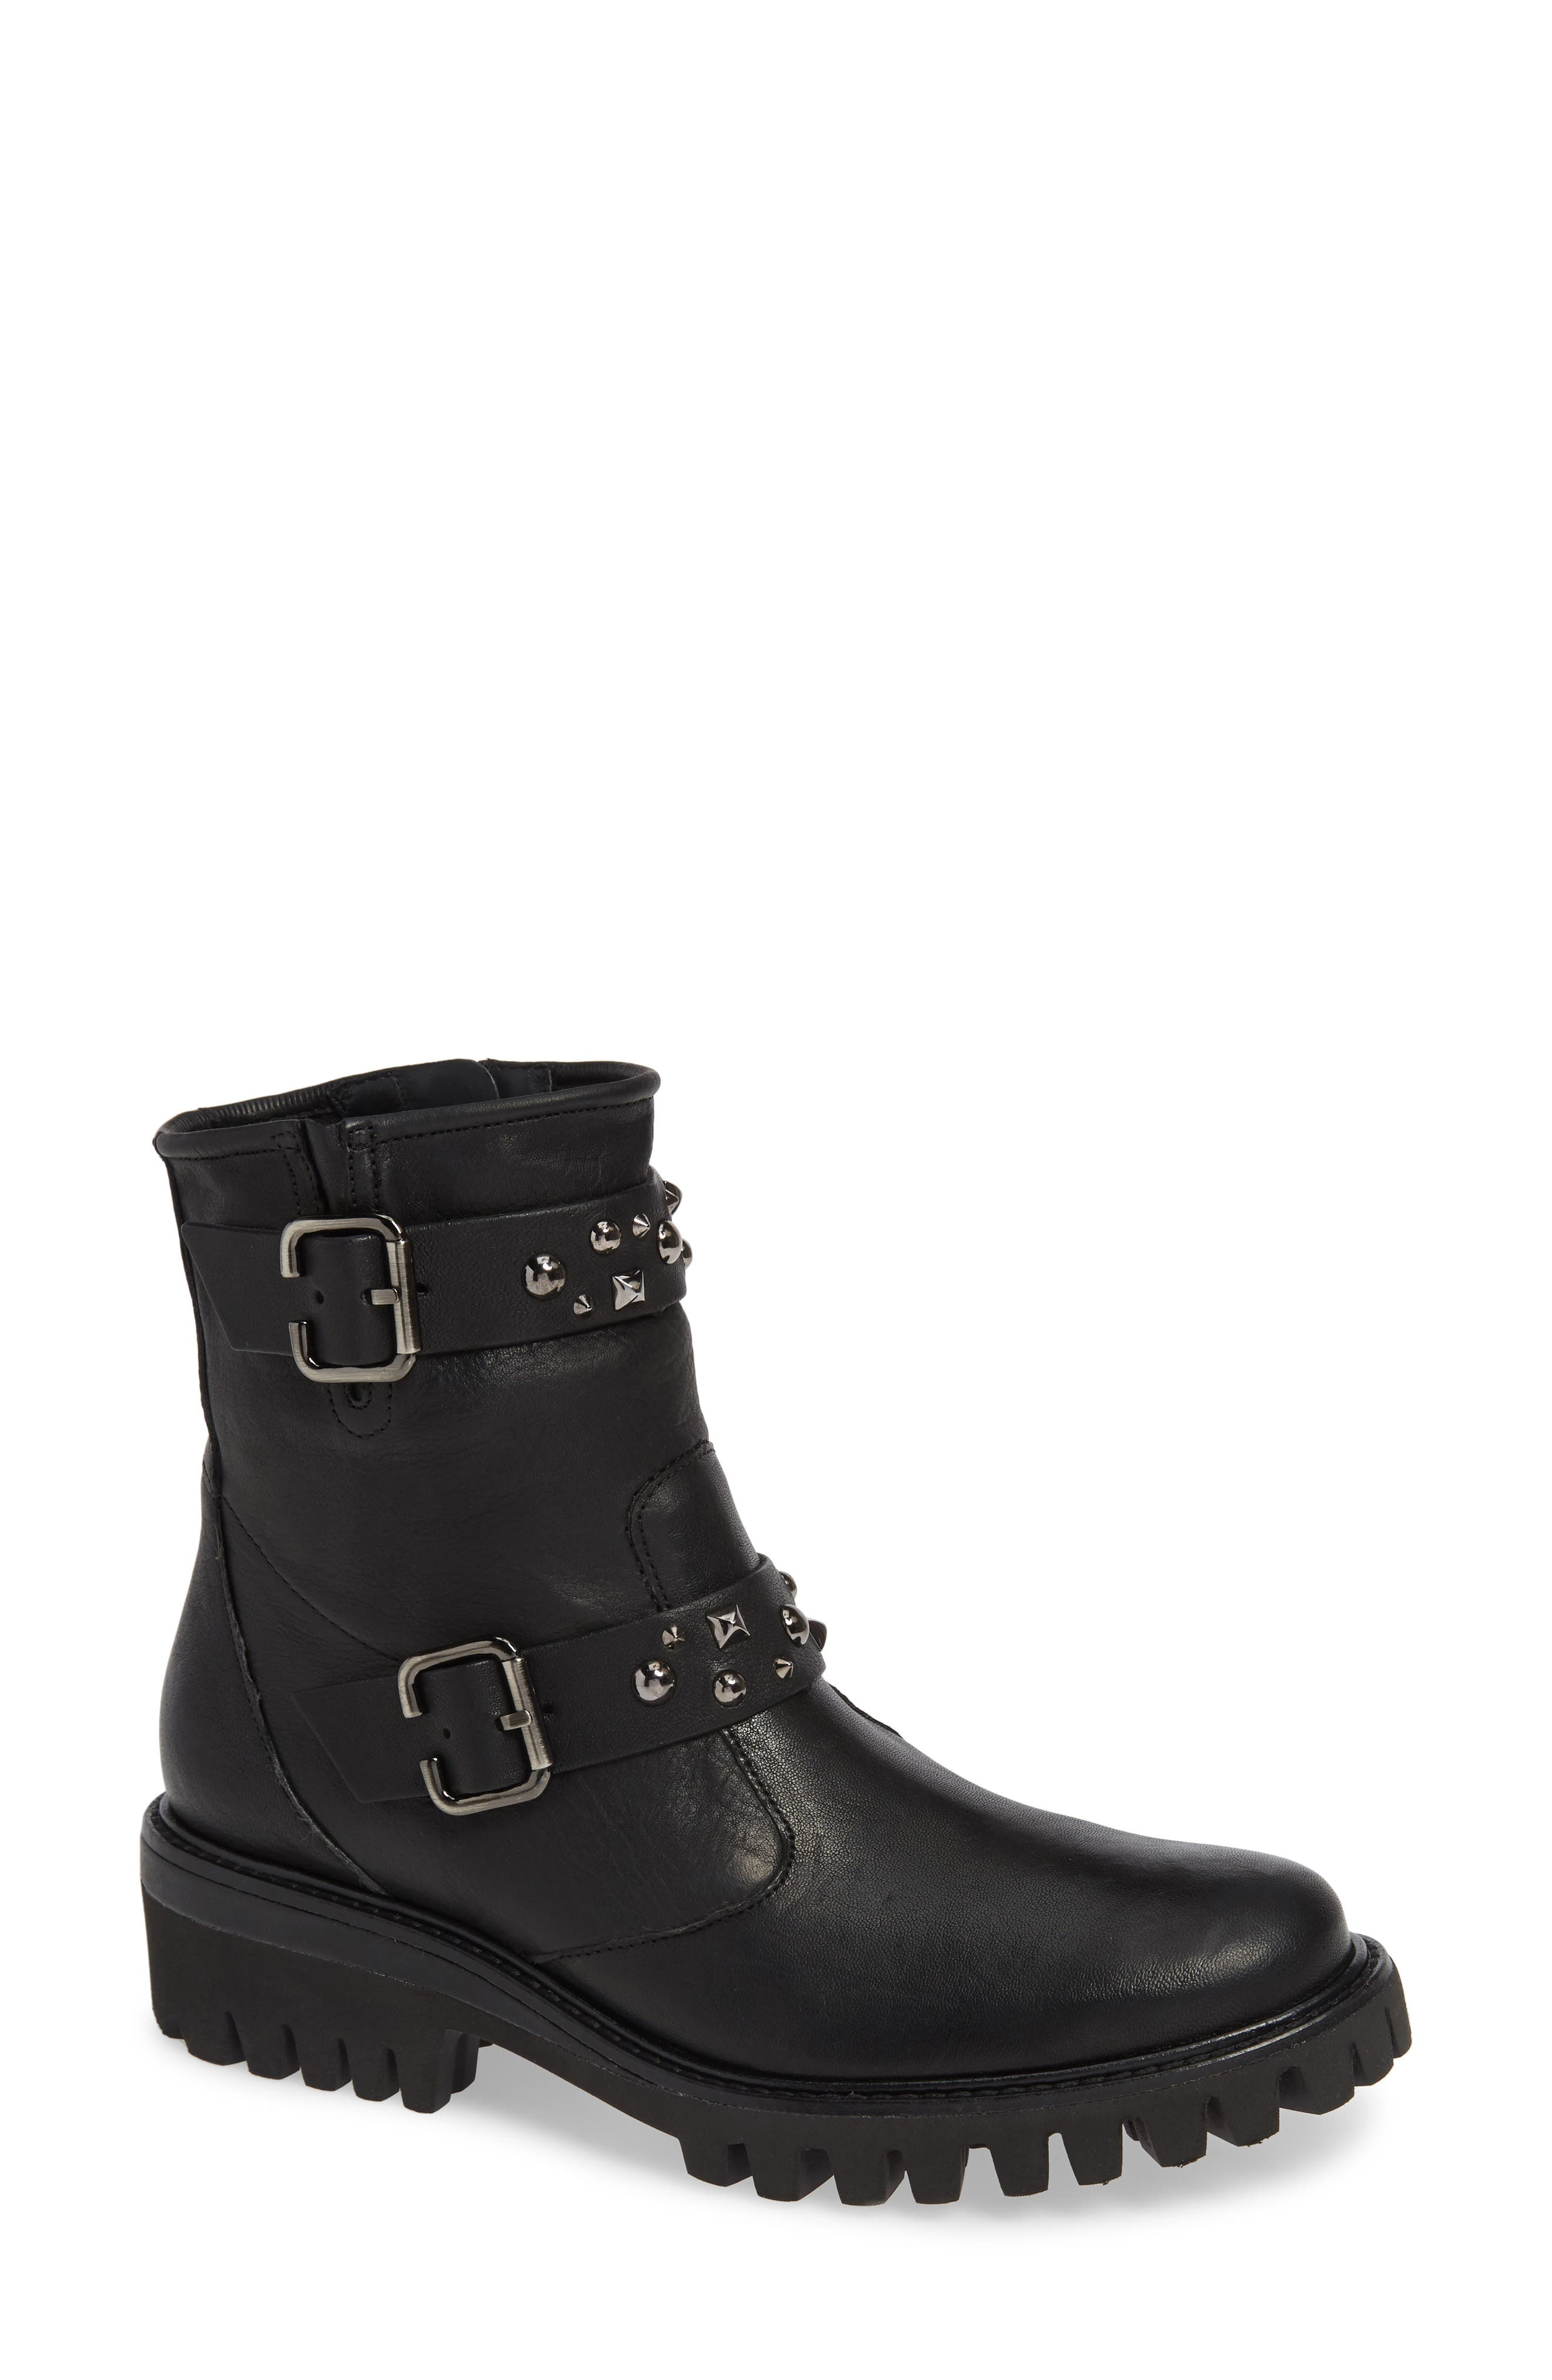 Veronia Studded Buckle Boot,                         Main,                         color, BLACK LEATHER